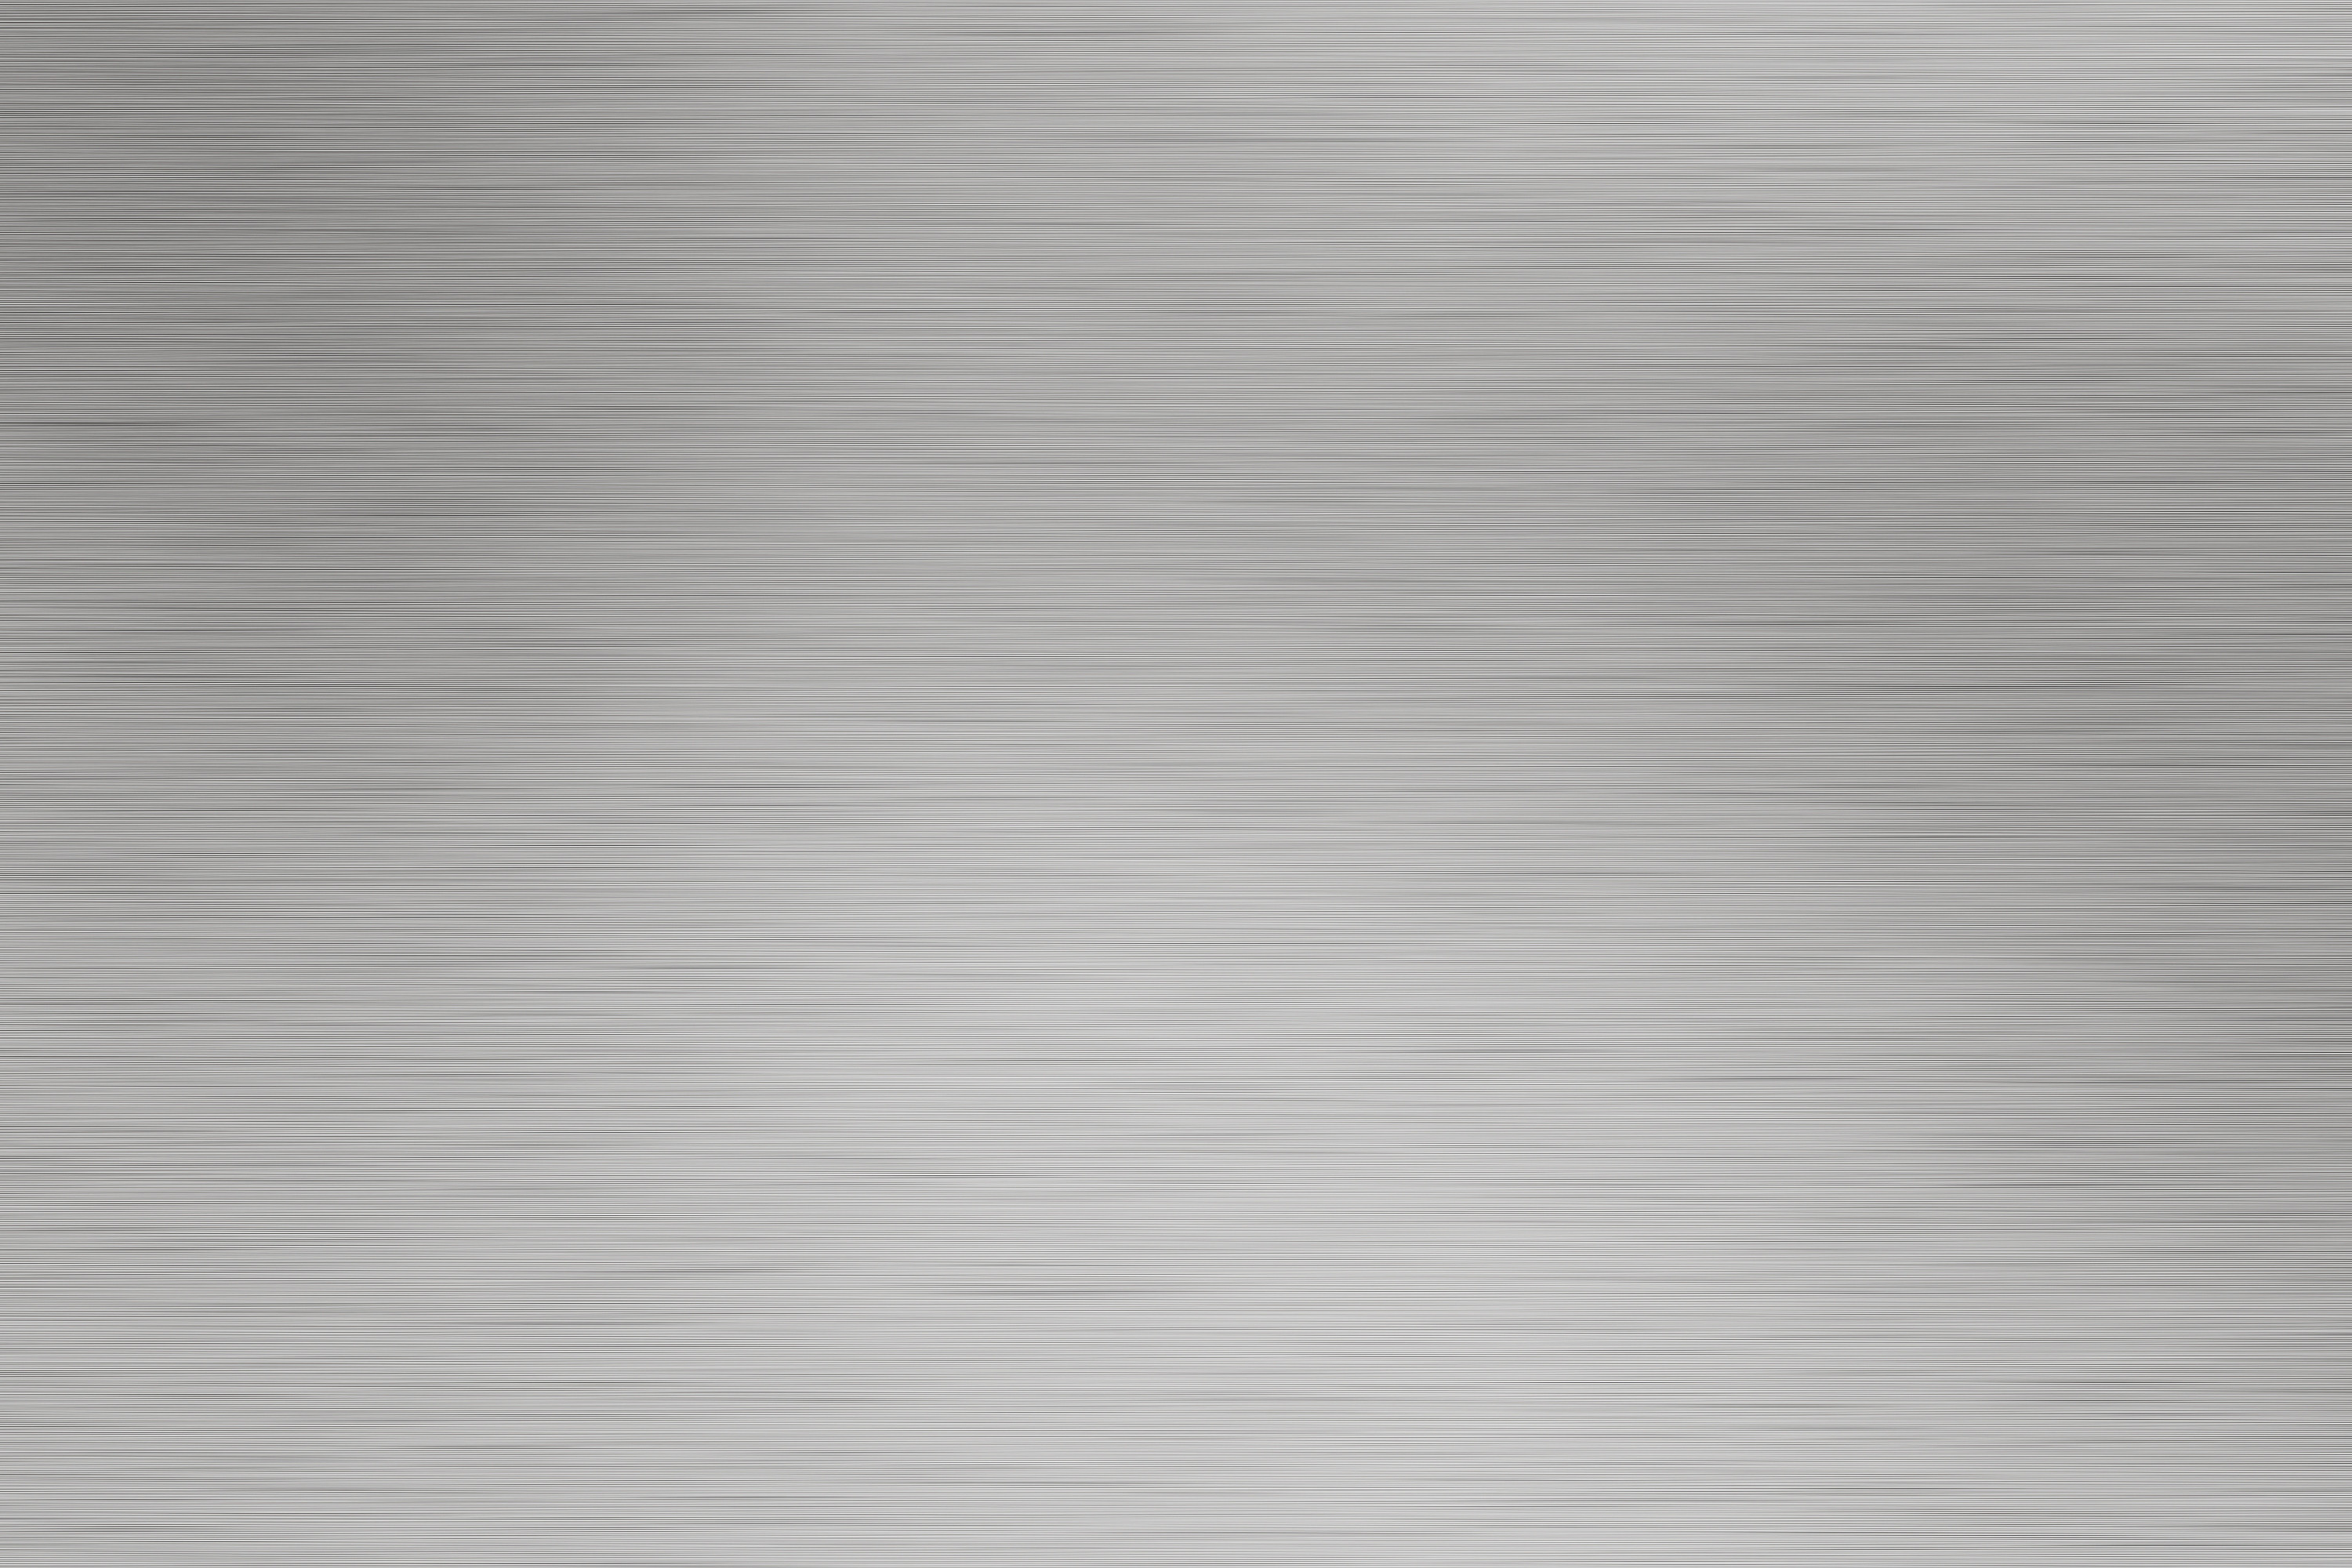 3000x2000 Metallic-silver-background-wallpaper